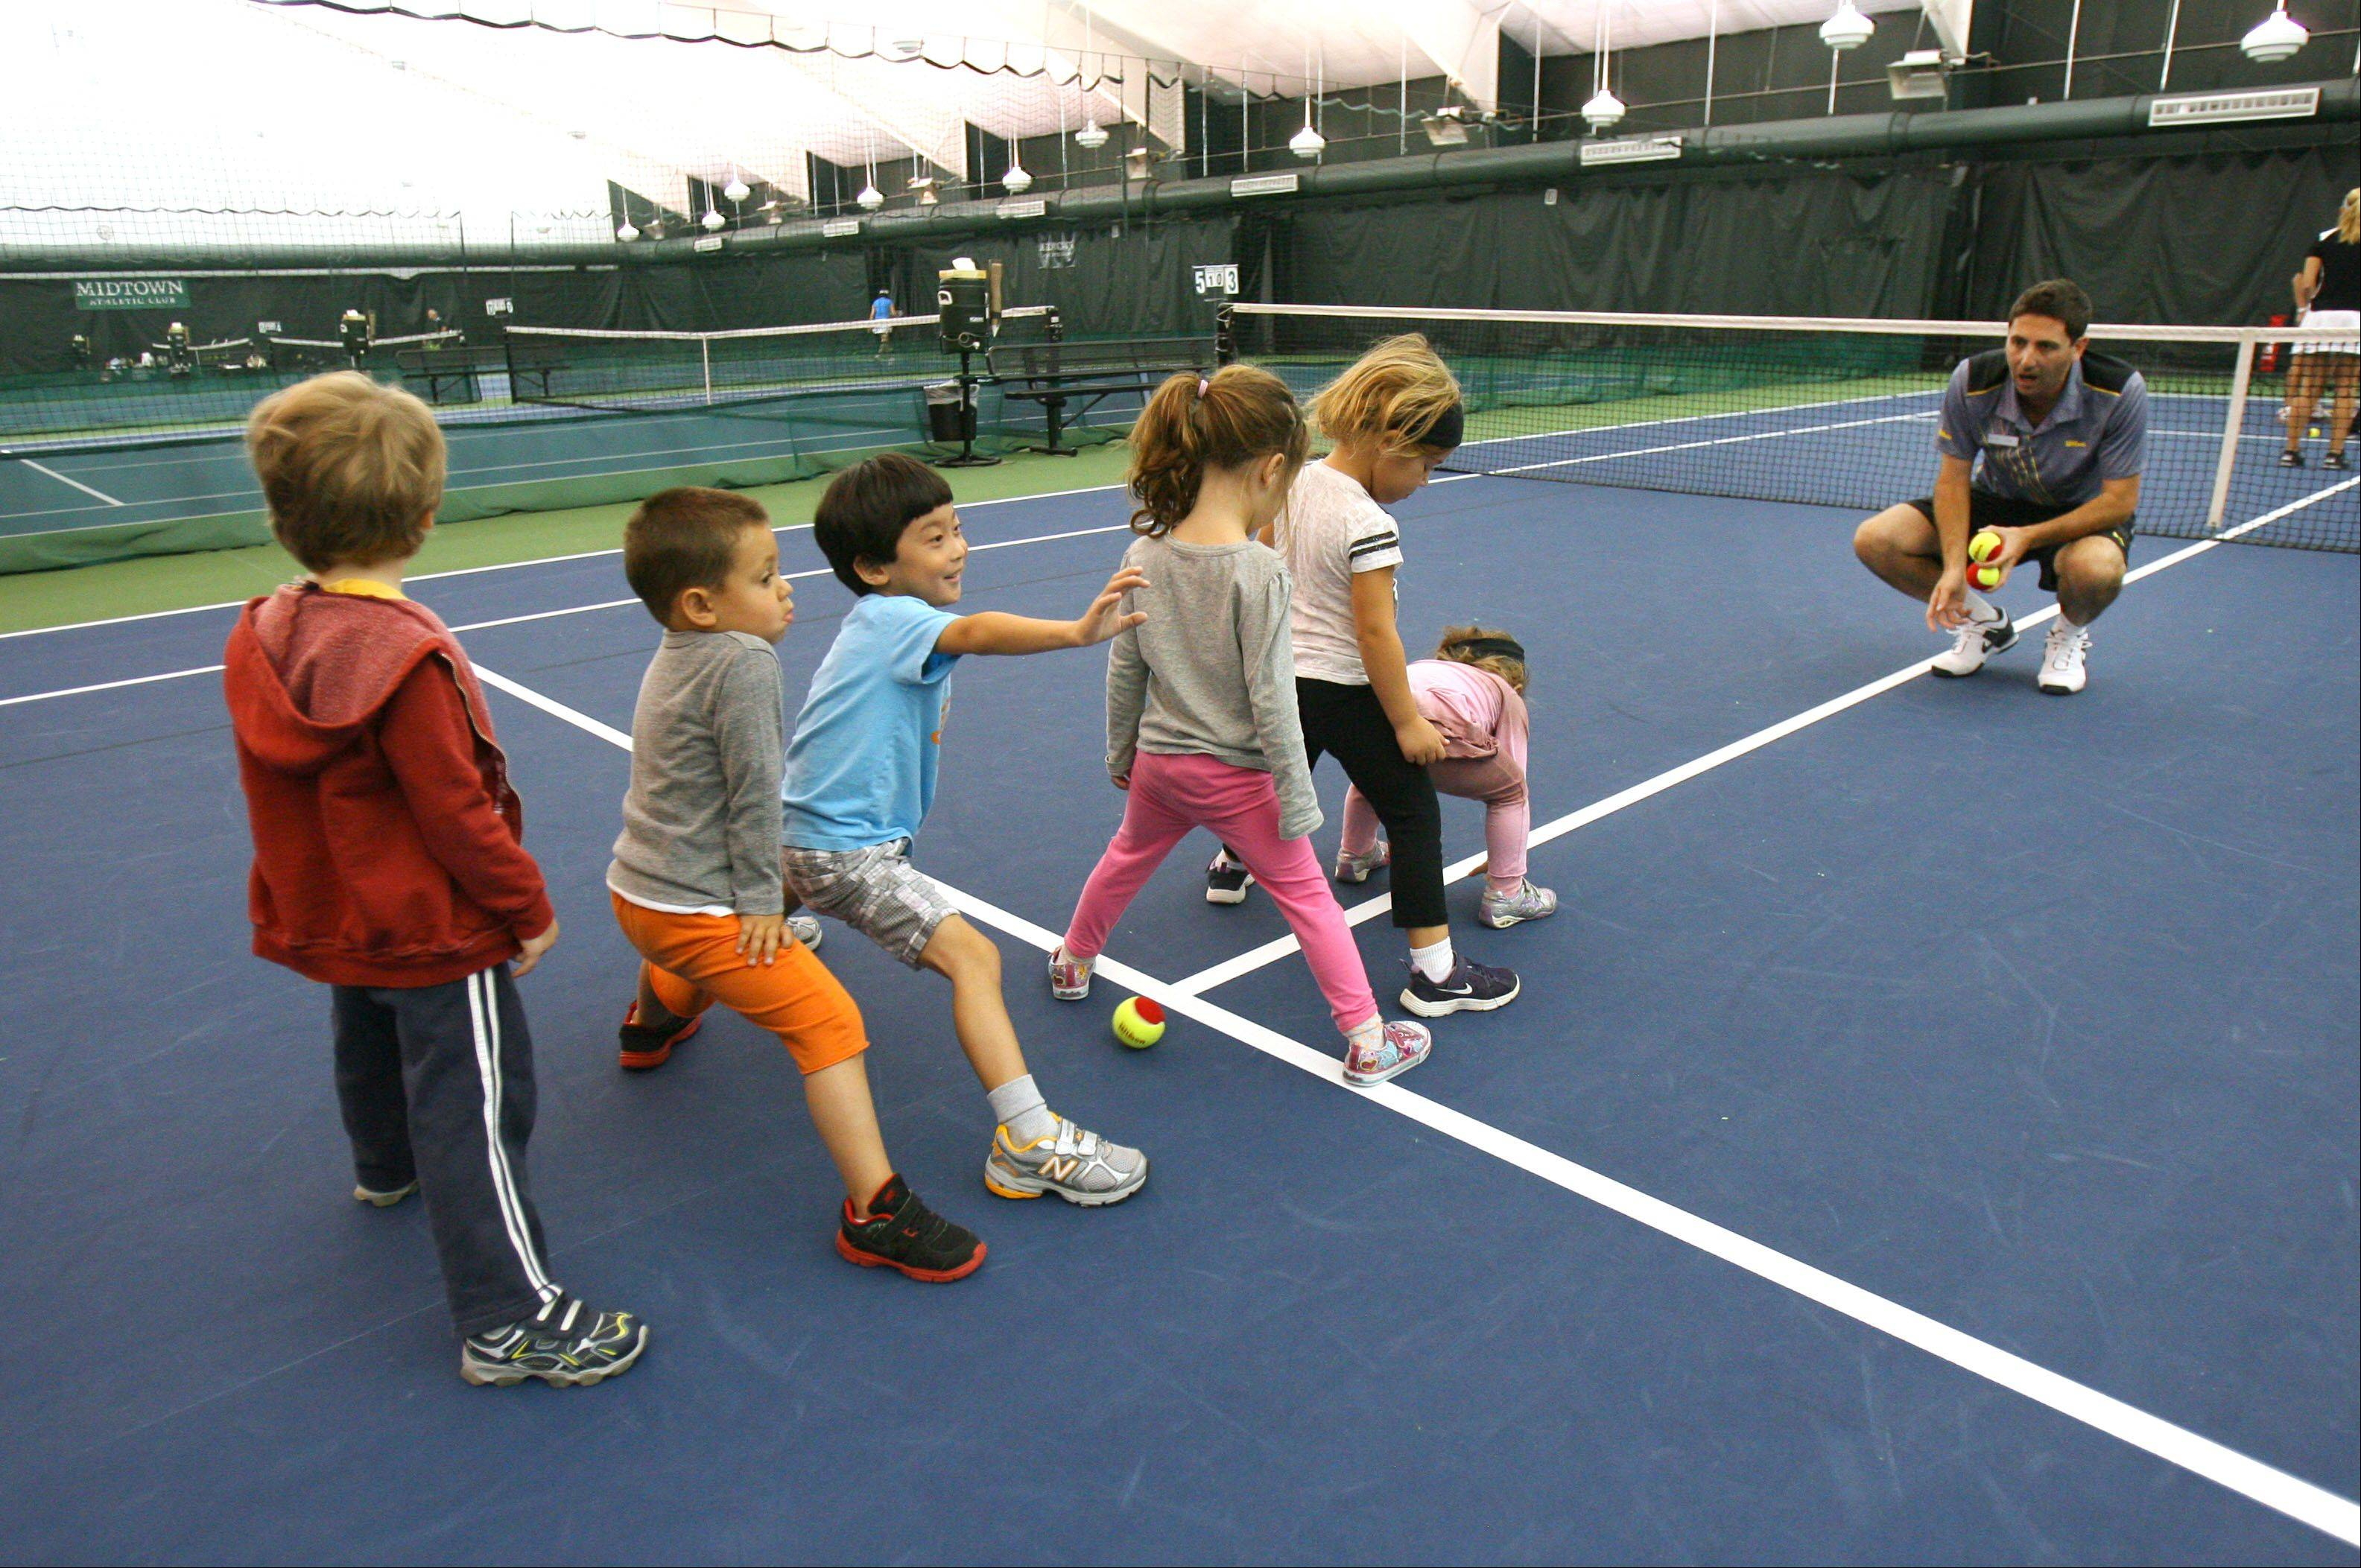 """Don't let the dragon hit your feet,"" instructor Jarrod Diepraam says during Midtown Athletic Club's tennis program for toddlers in Bannockburn. Tennis Explorers blends physical activities, tennis skills and storytelling in an on-court environment."